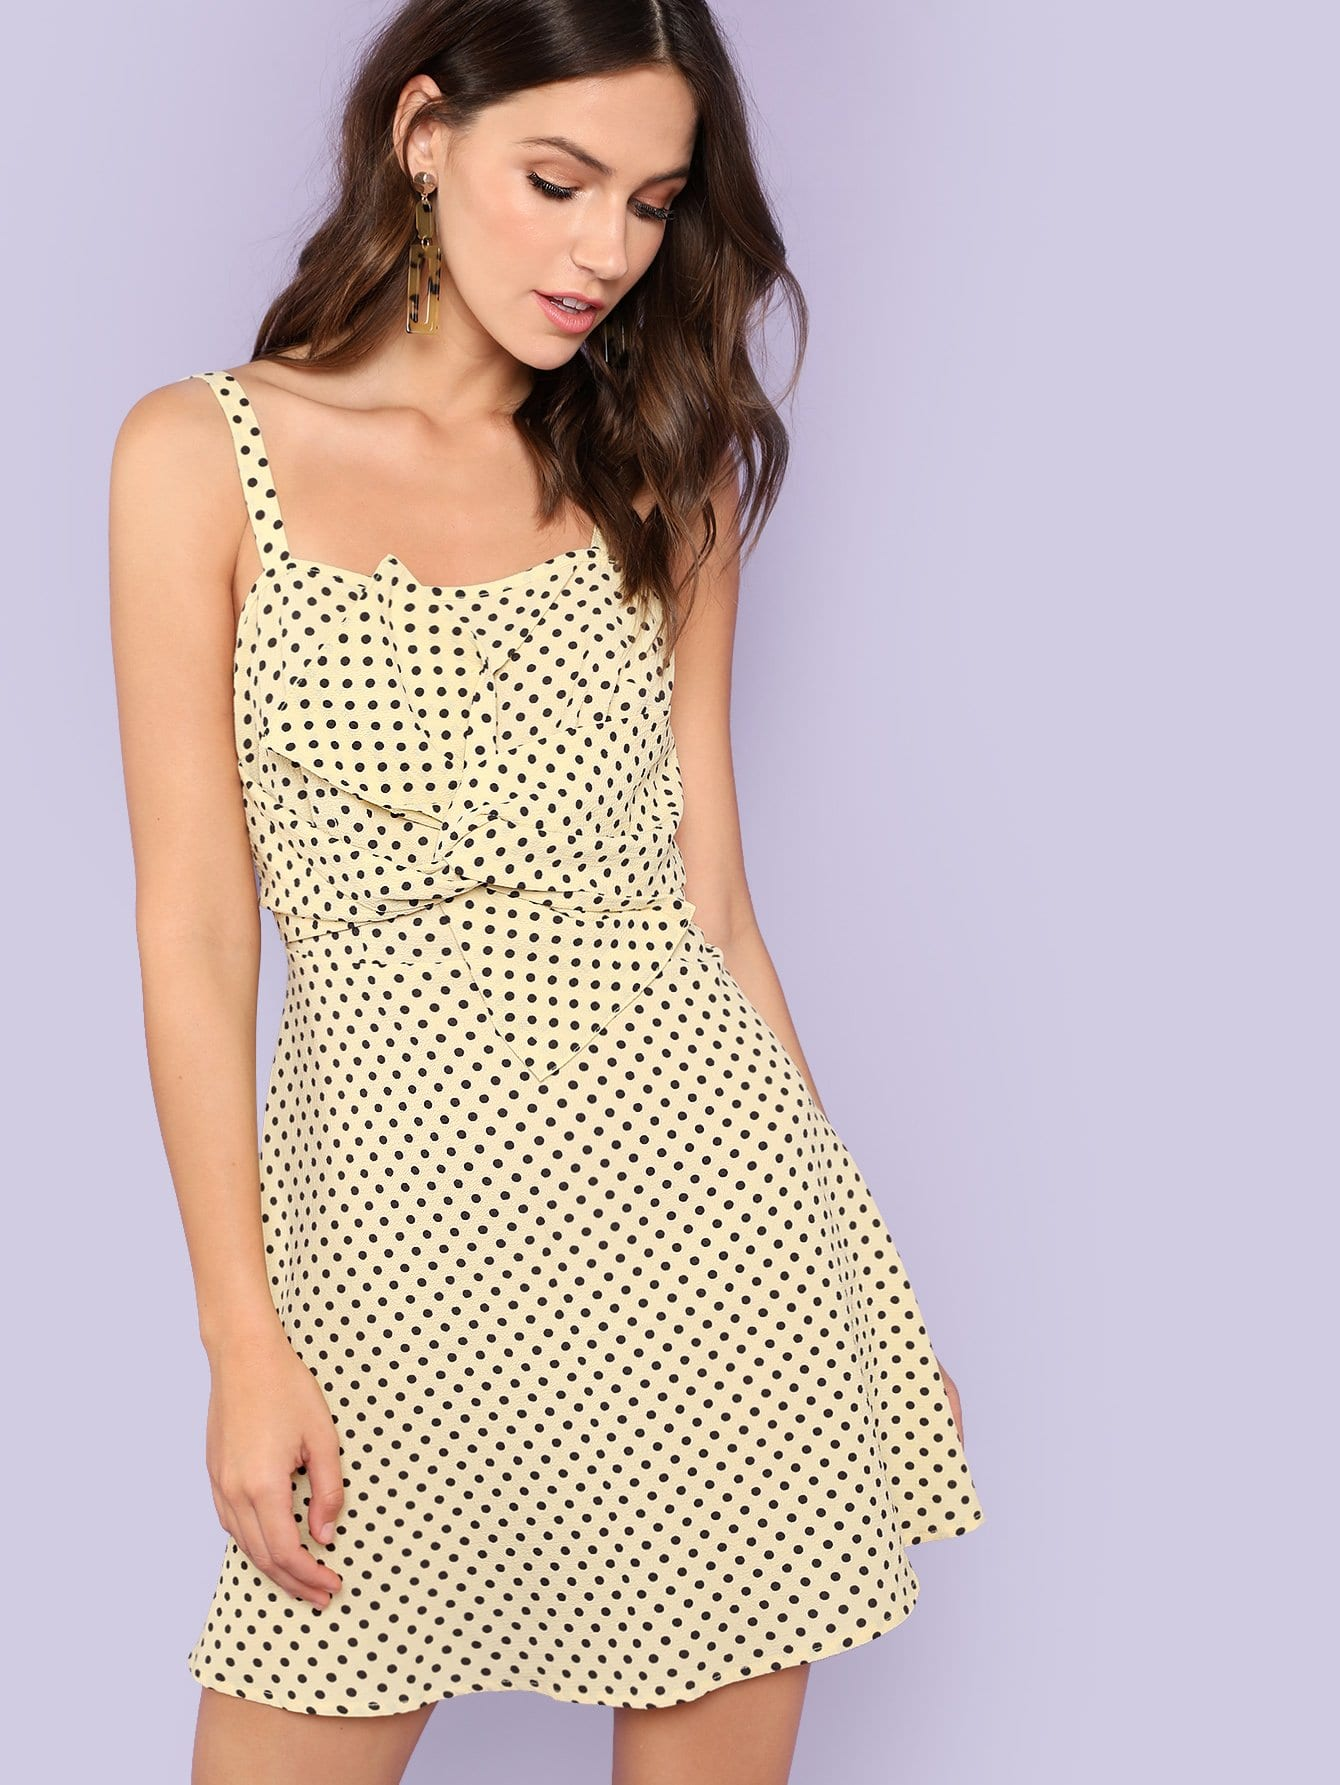 Twist Front Polka Dot Fit and Flare Dress vintage polka dot floral fit and flare dress